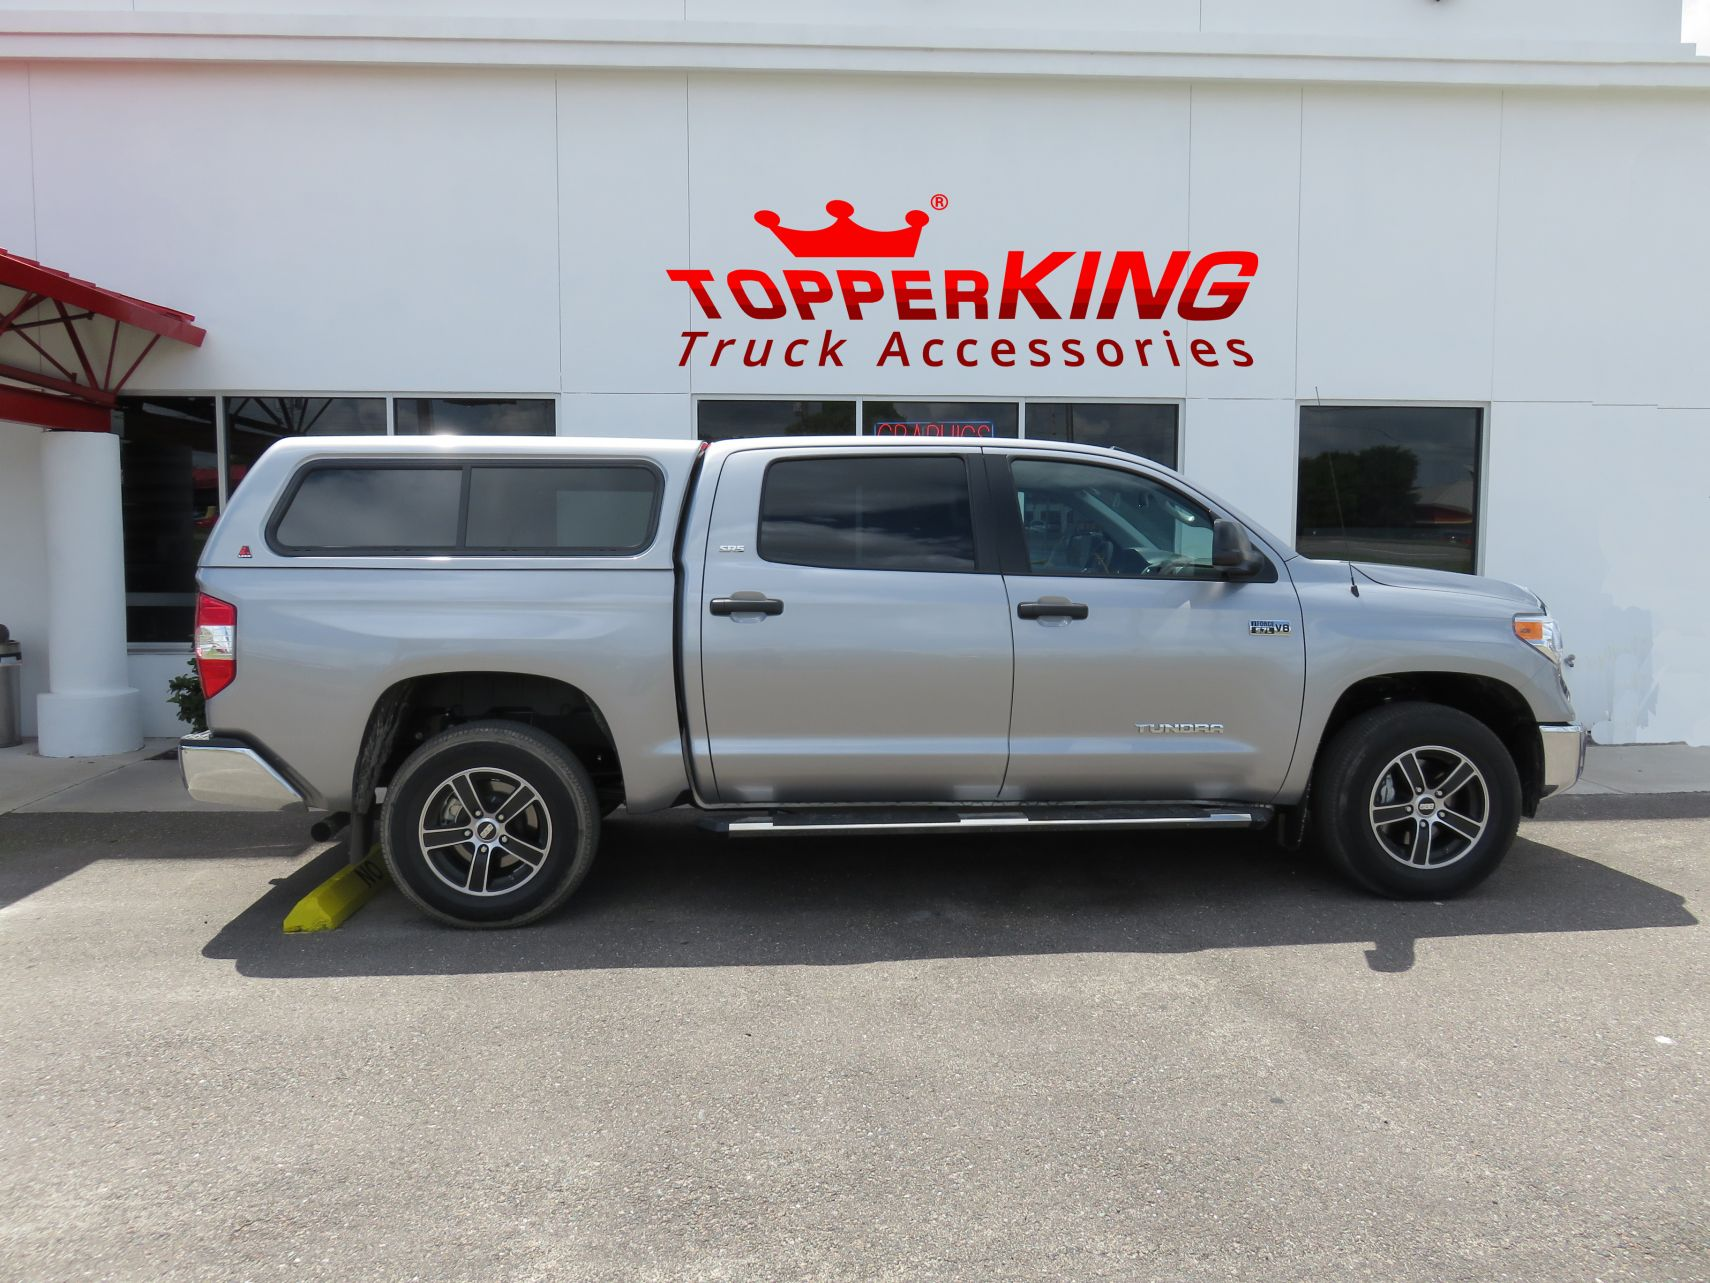 2015 Toyota Tundrawith LEER 100XR Fiberglass Topper Nerf Bars, Hitch, Tint by TopperKING Brandon 813-689-2449 or Clearwater FL 727-530-9066.